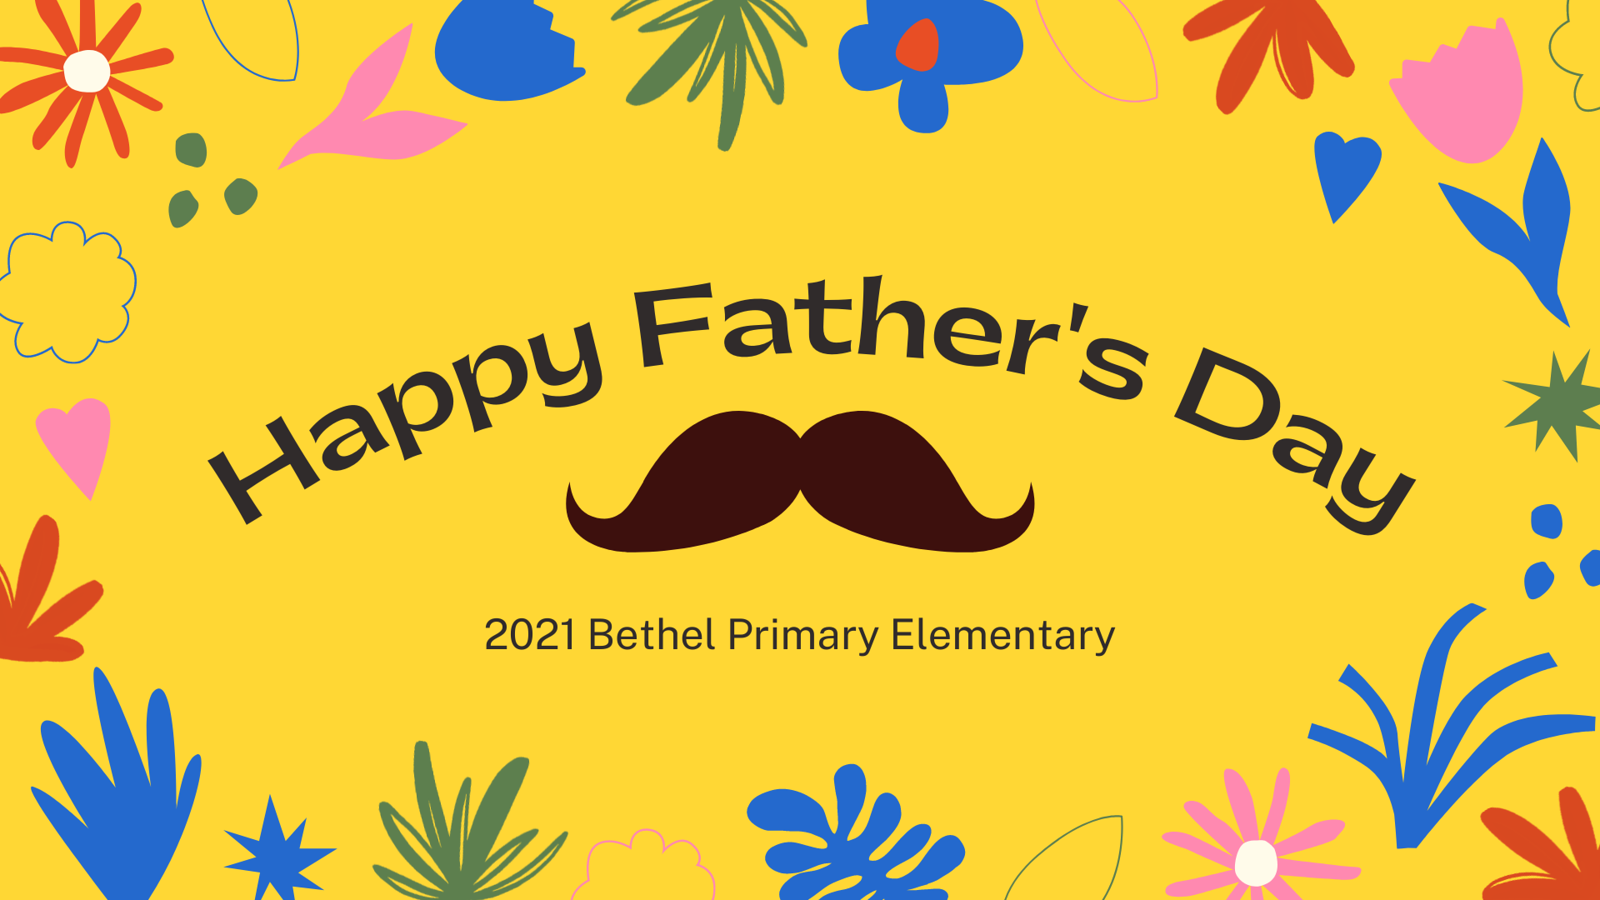 06/20/21 Father's day